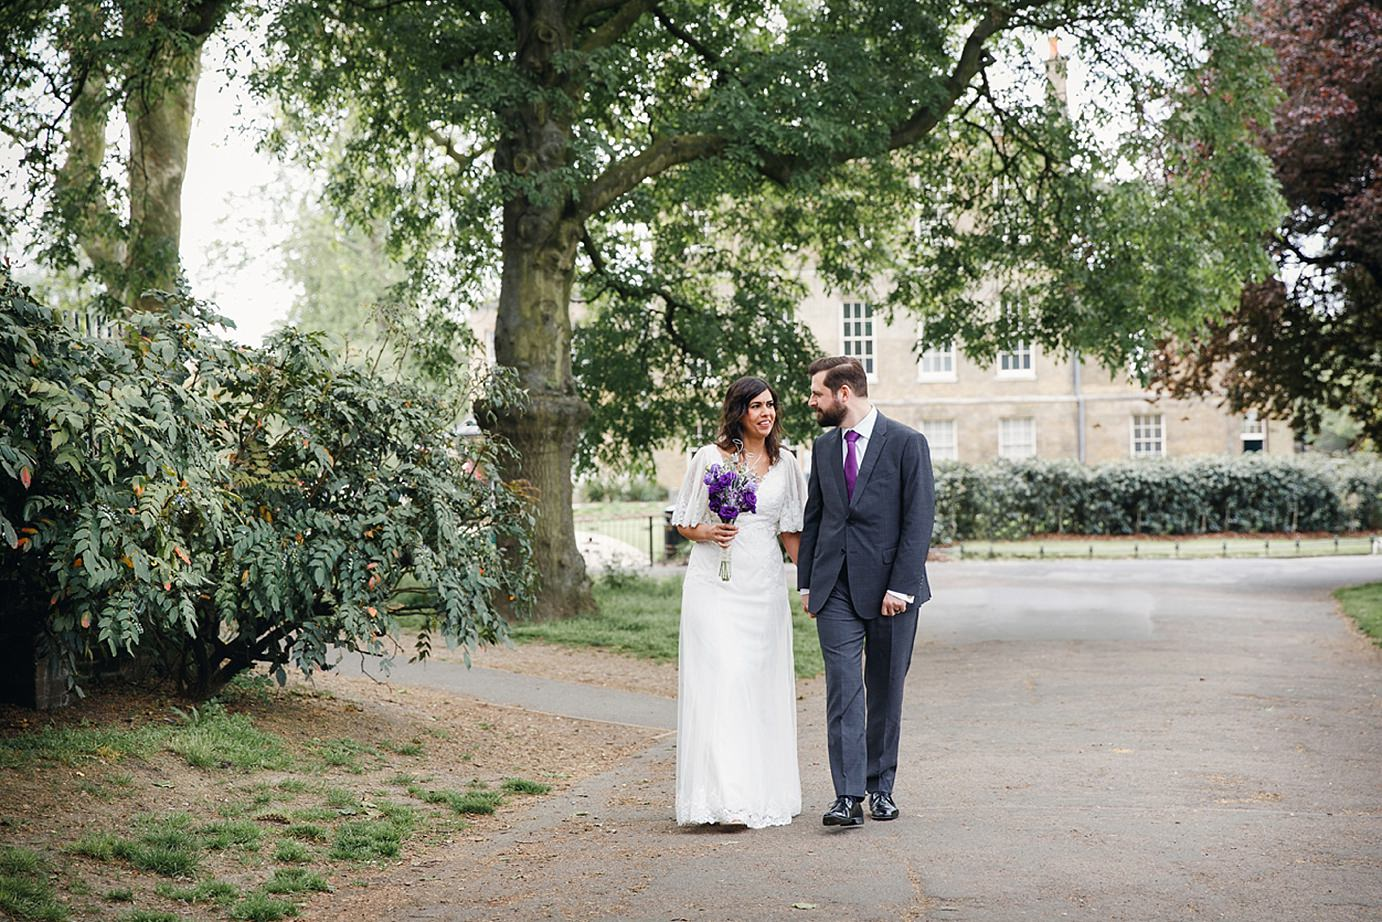 Londesborough pub wedding photography bride and groom walking